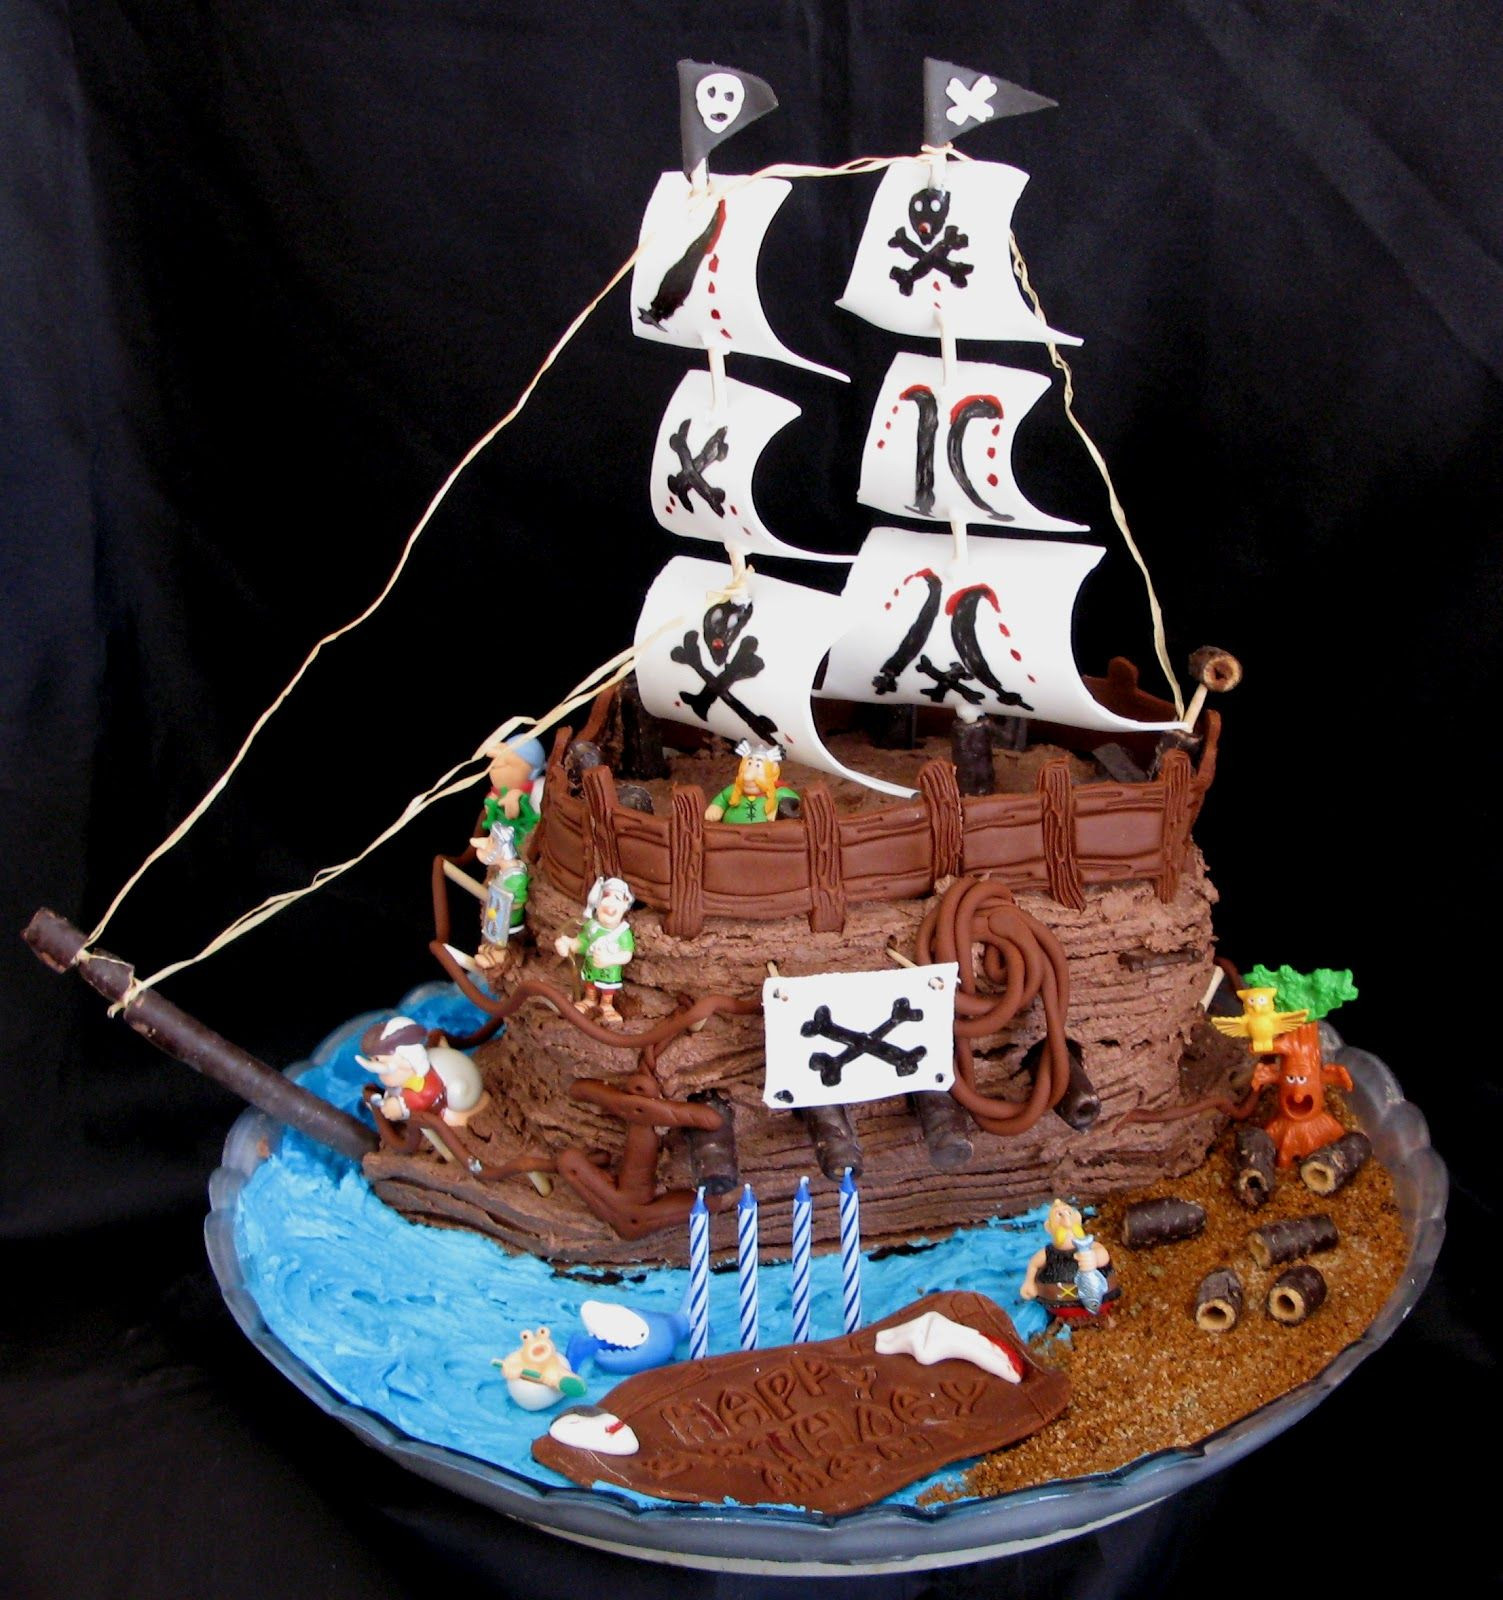 Best ideas about Ship Birthday Cake . Save or Pin Pirate ship cake with all the trimmings Now.